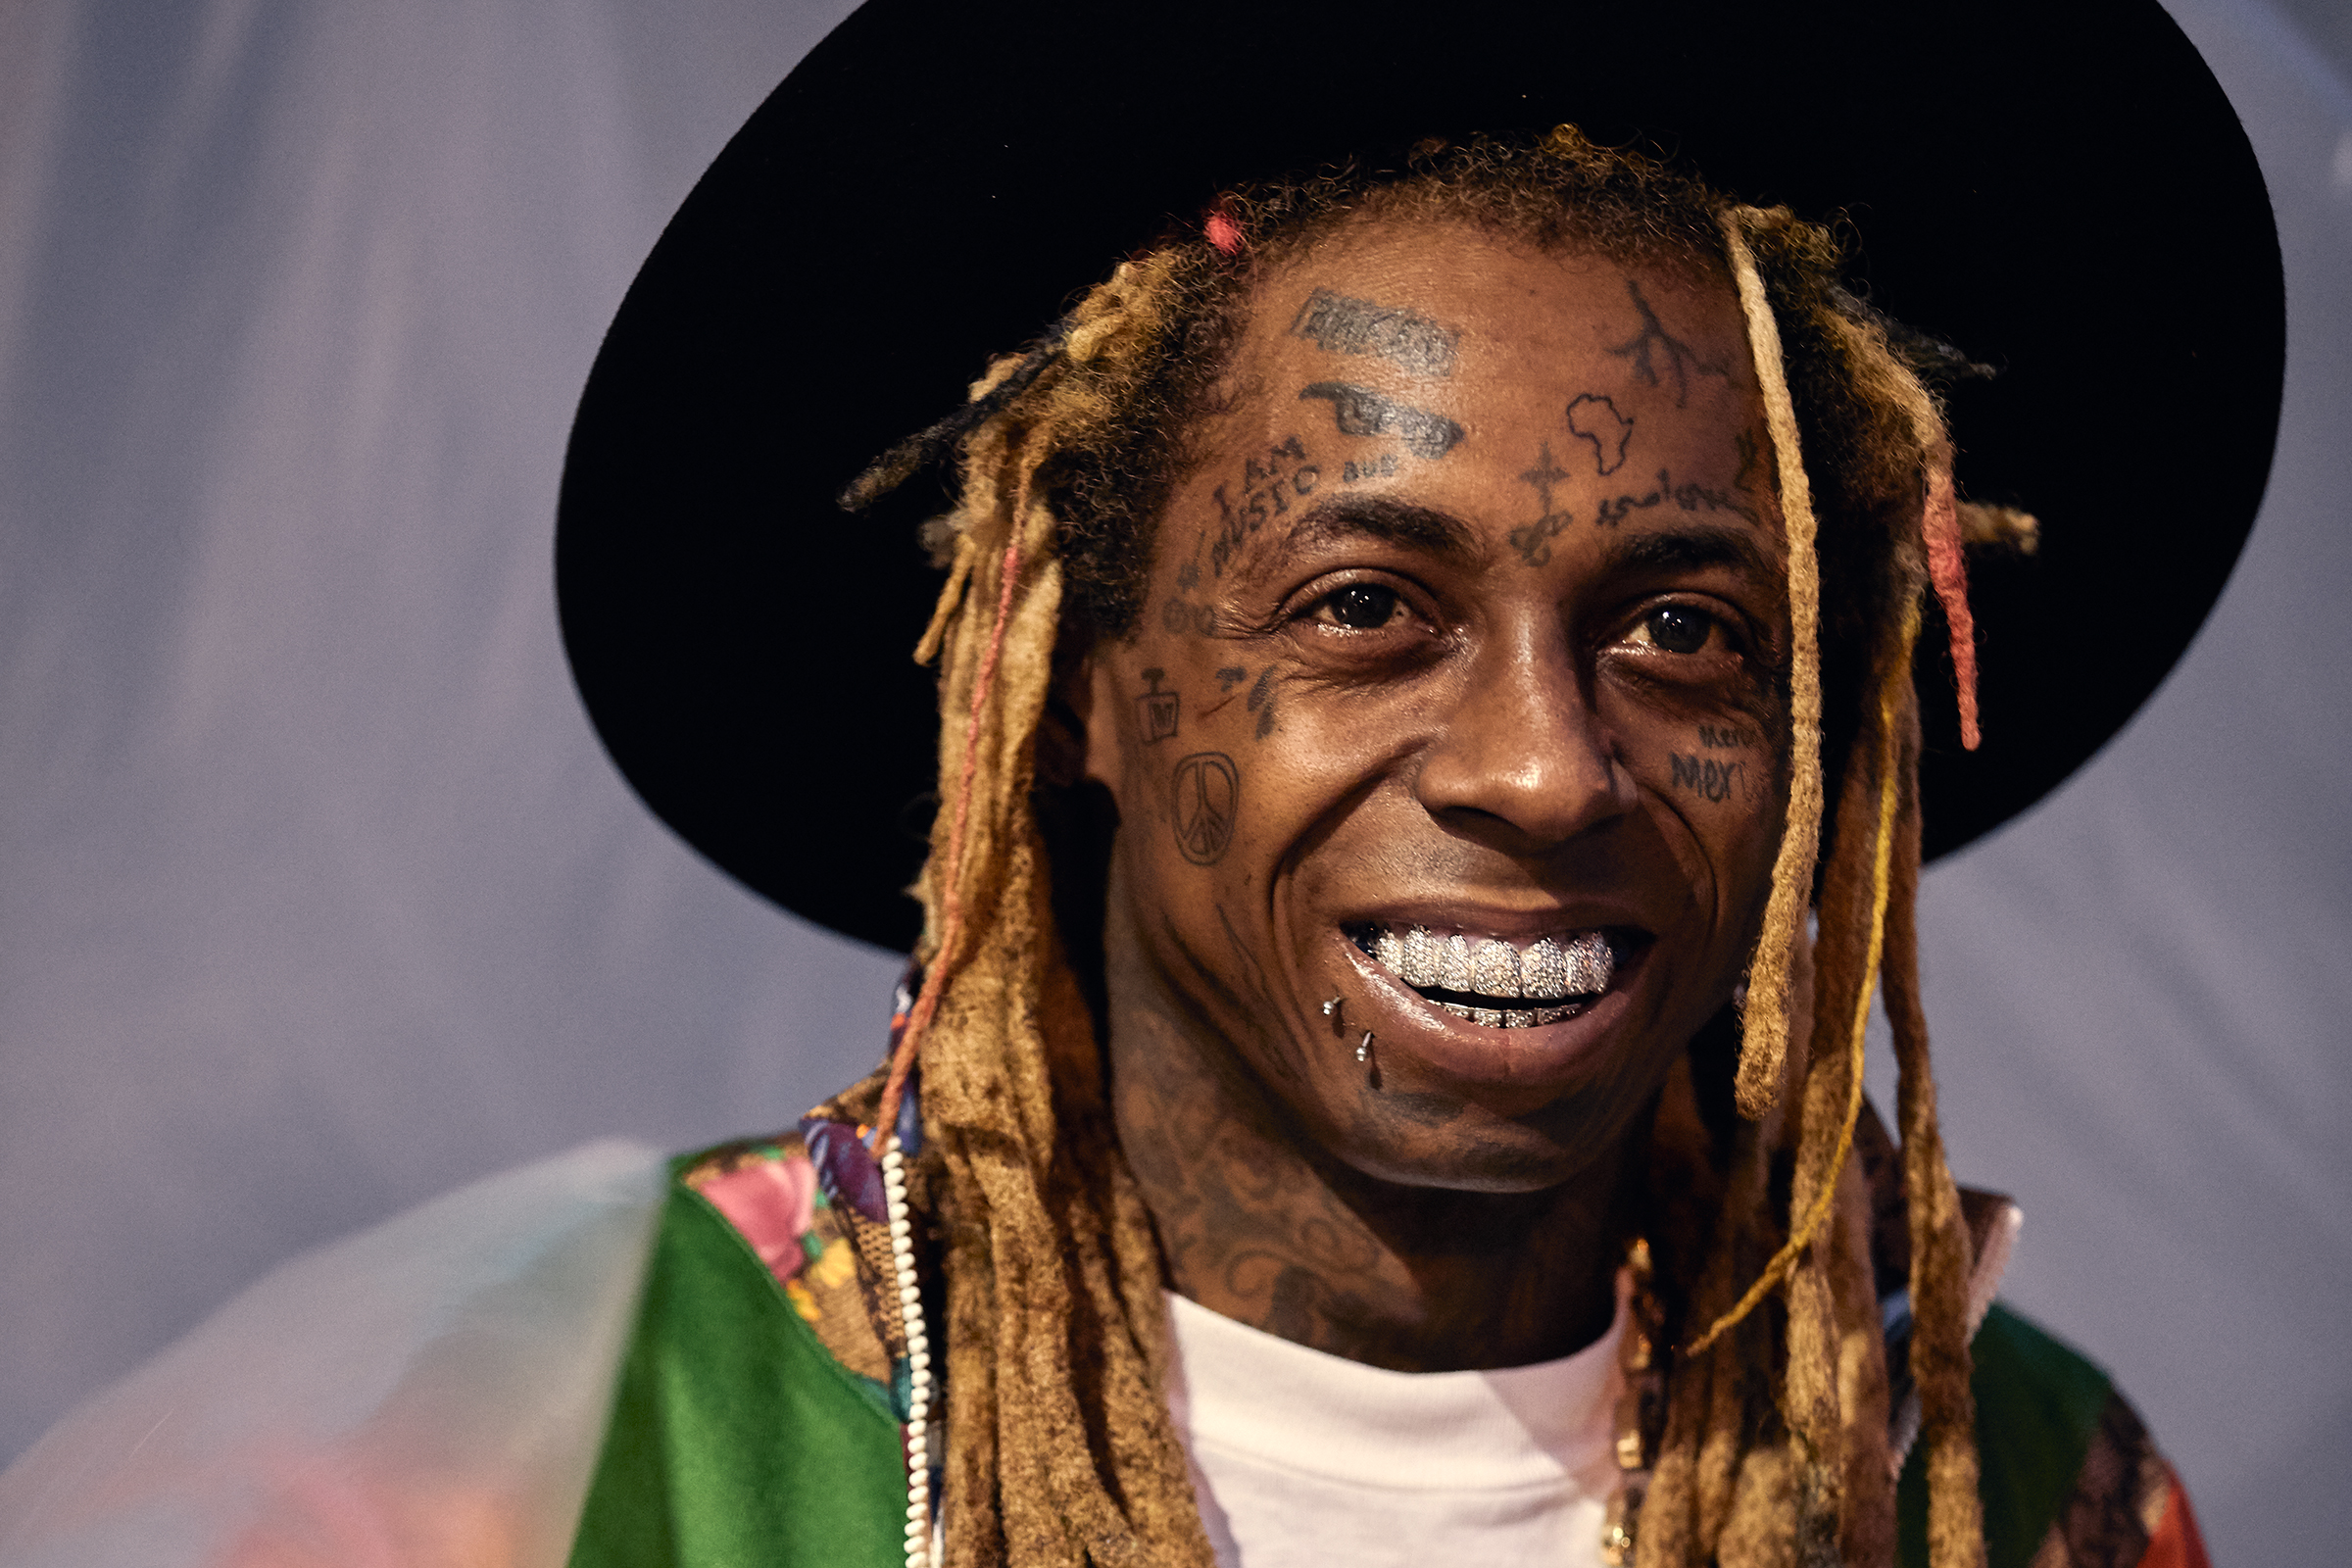 American Rapper, Lil Wayne Reveals He's Partly Nigerian After Taking DNA Test